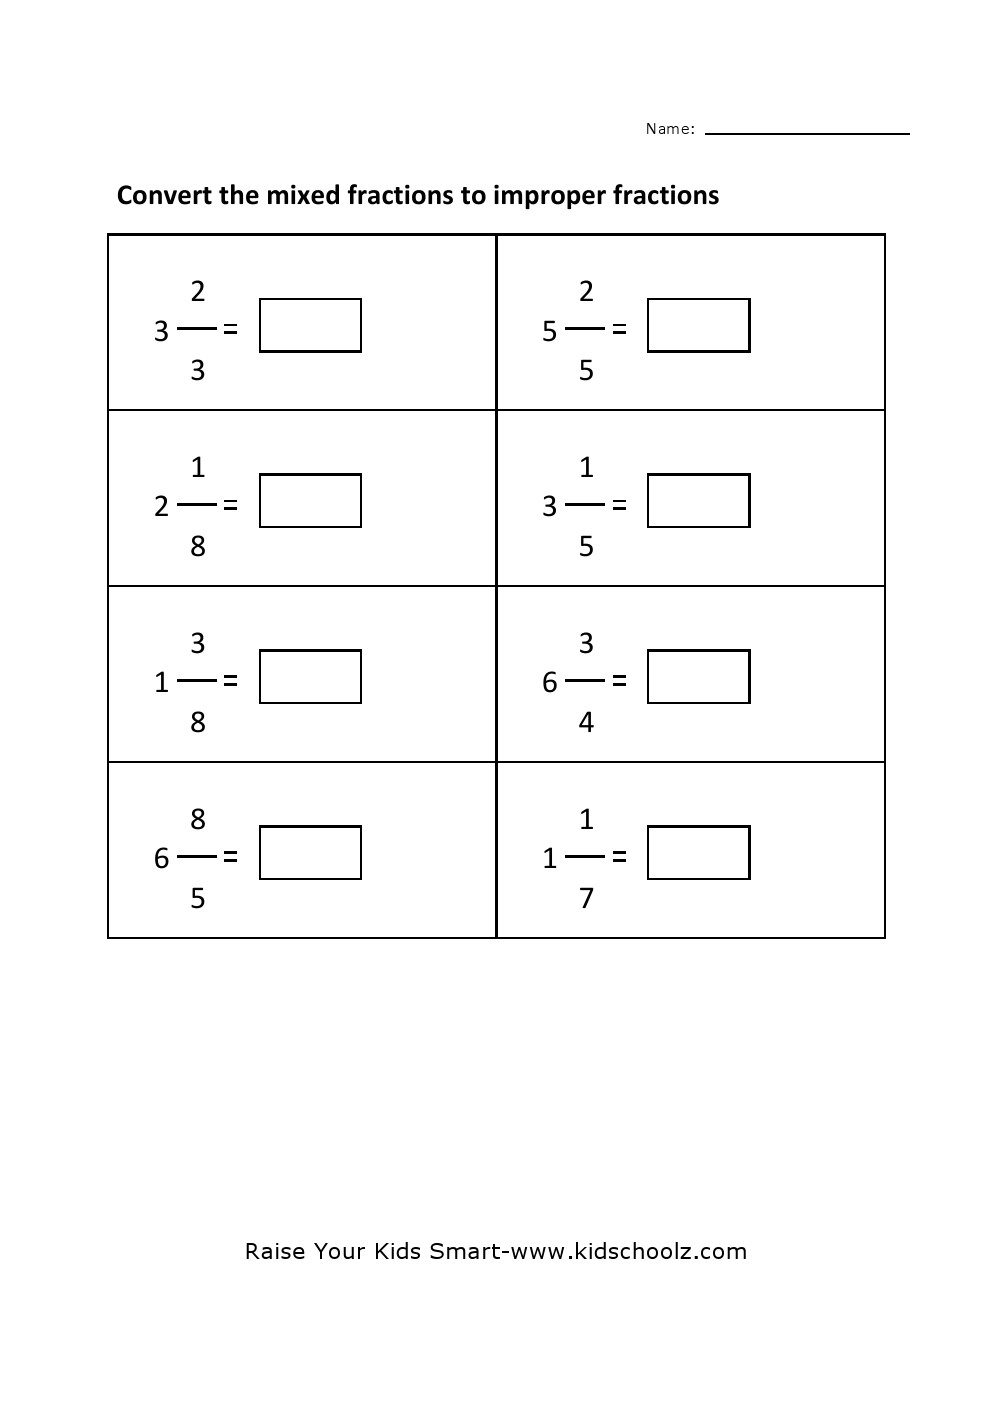 Grade 4 Convert Mixed Fraction To Improper Fraction Worksheet 2 – Mixed Fractions to Improper Fractions Worksheets